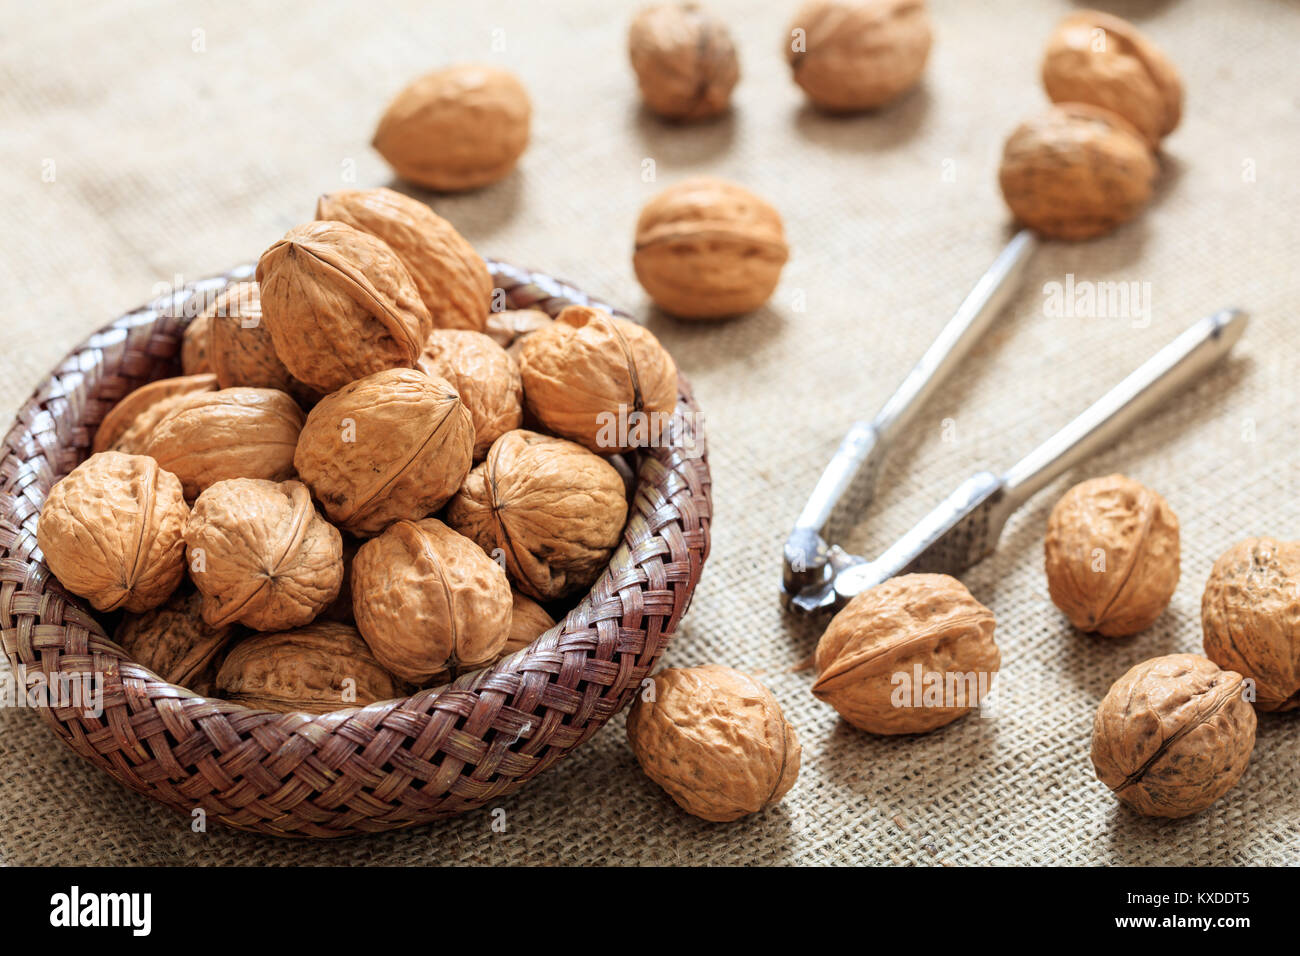 Walnuts in a small basket on a table - Stock Image